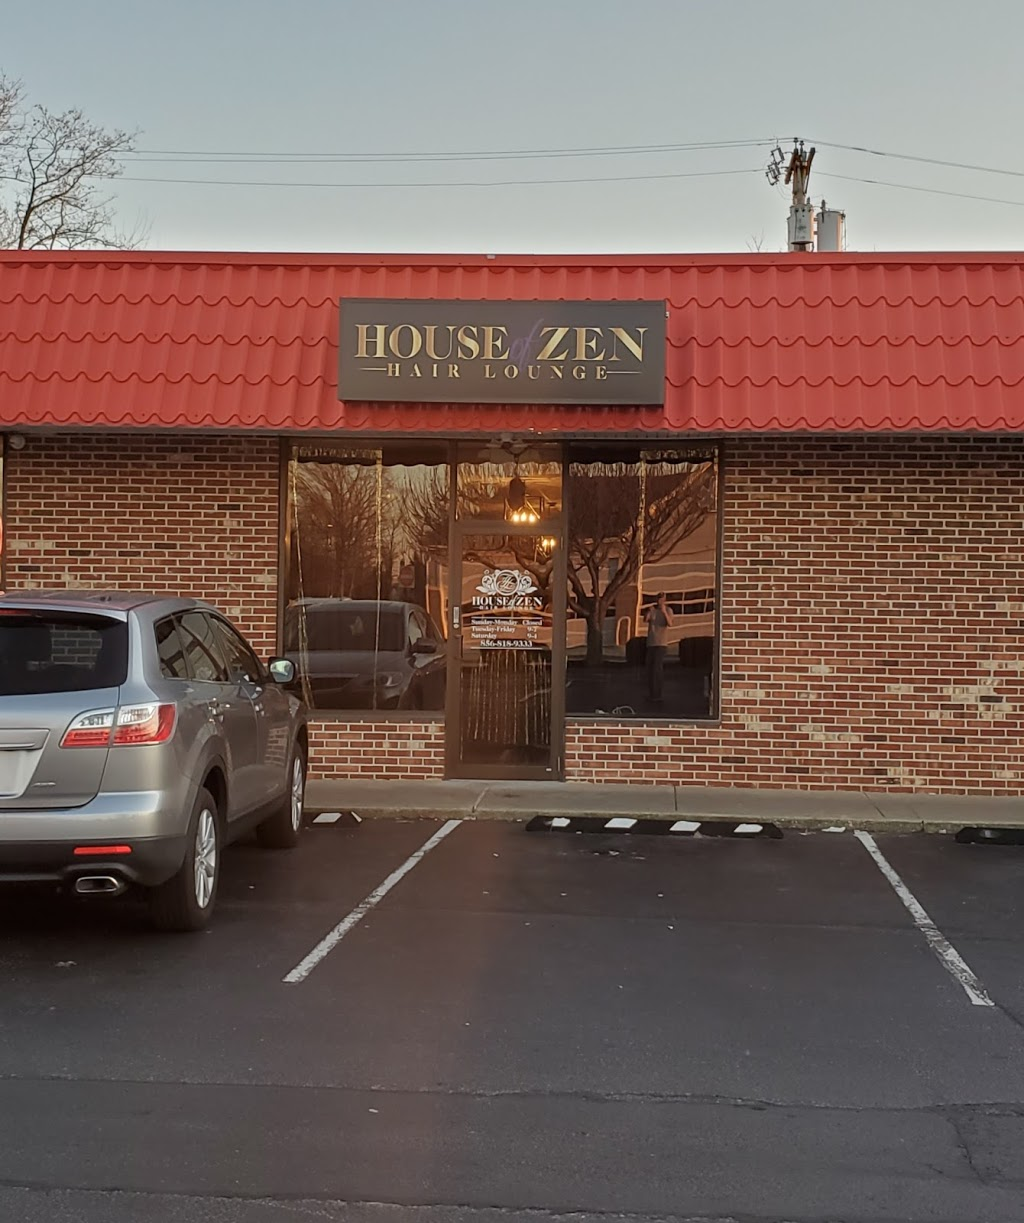 House of zen hair lounge - hair care  | Photo 1 of 1 | Address: 721 Corkery Ln, Williamstown, NJ 08094, USA | Phone: (856) 818-9333